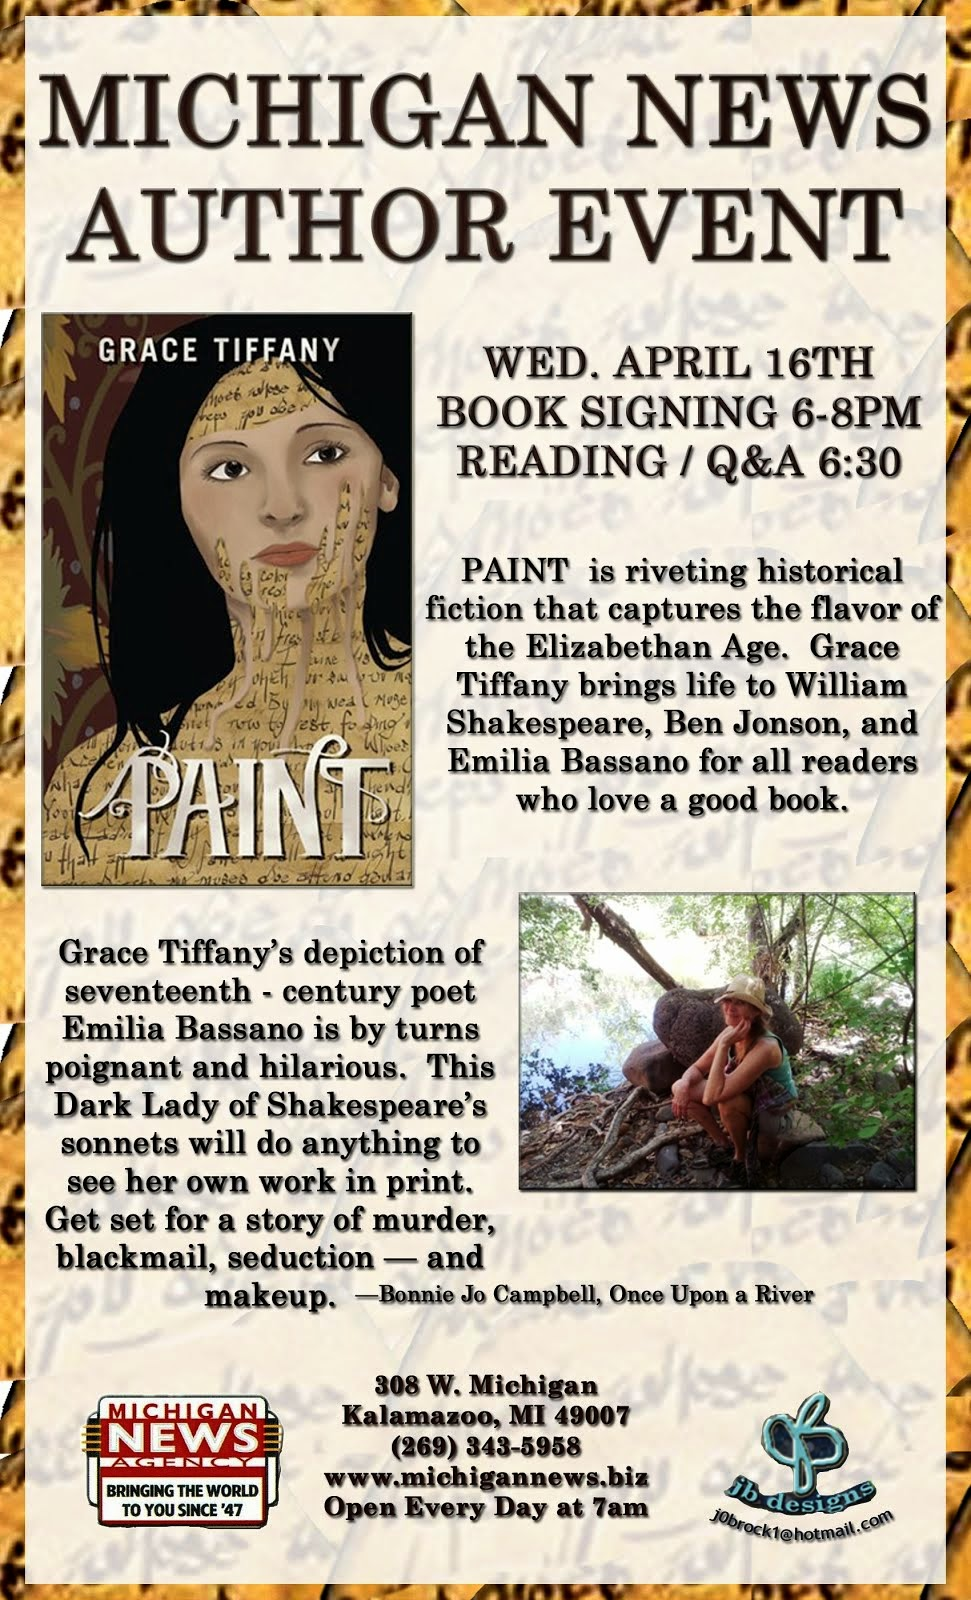 Wed. April 16th Reading, 6:30 p.m.